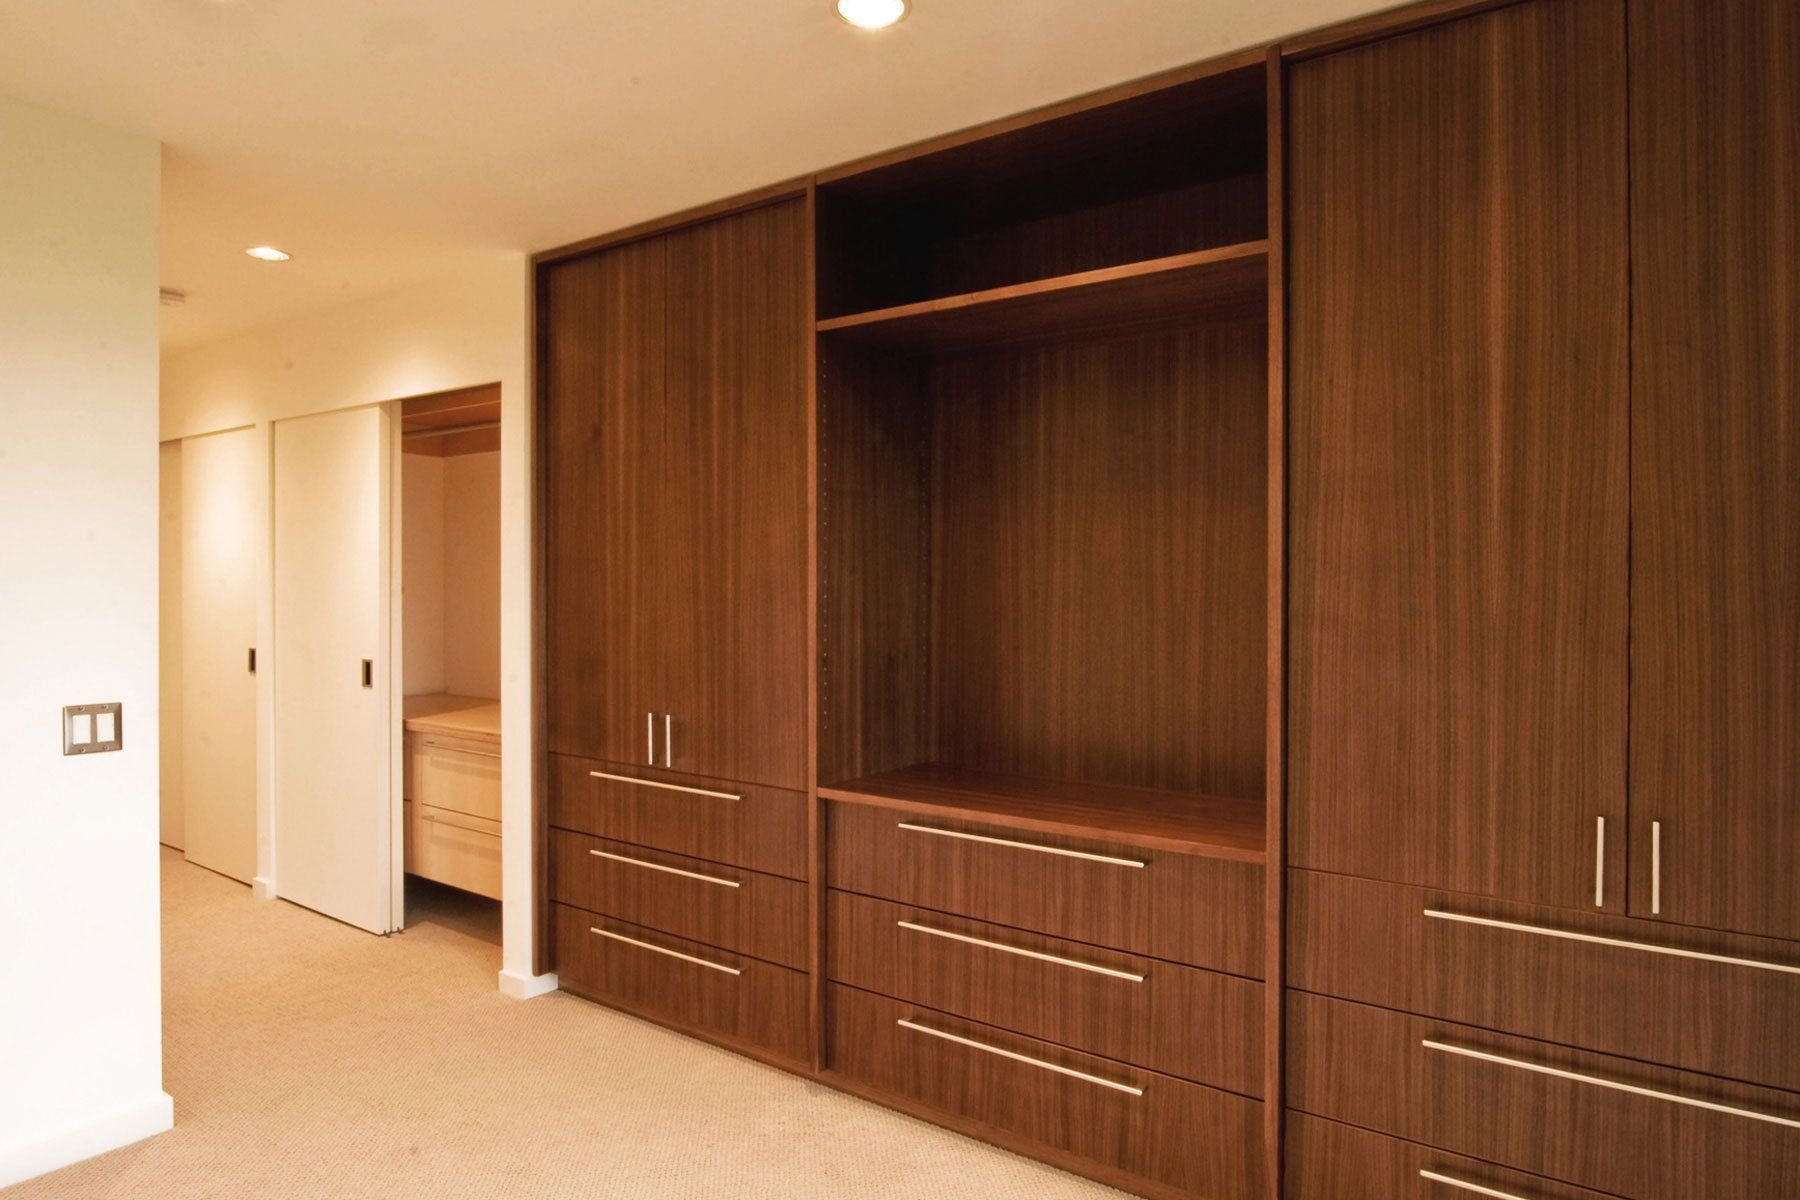 Best Drawers With Doors Above Similar To The Look Of The With Pictures